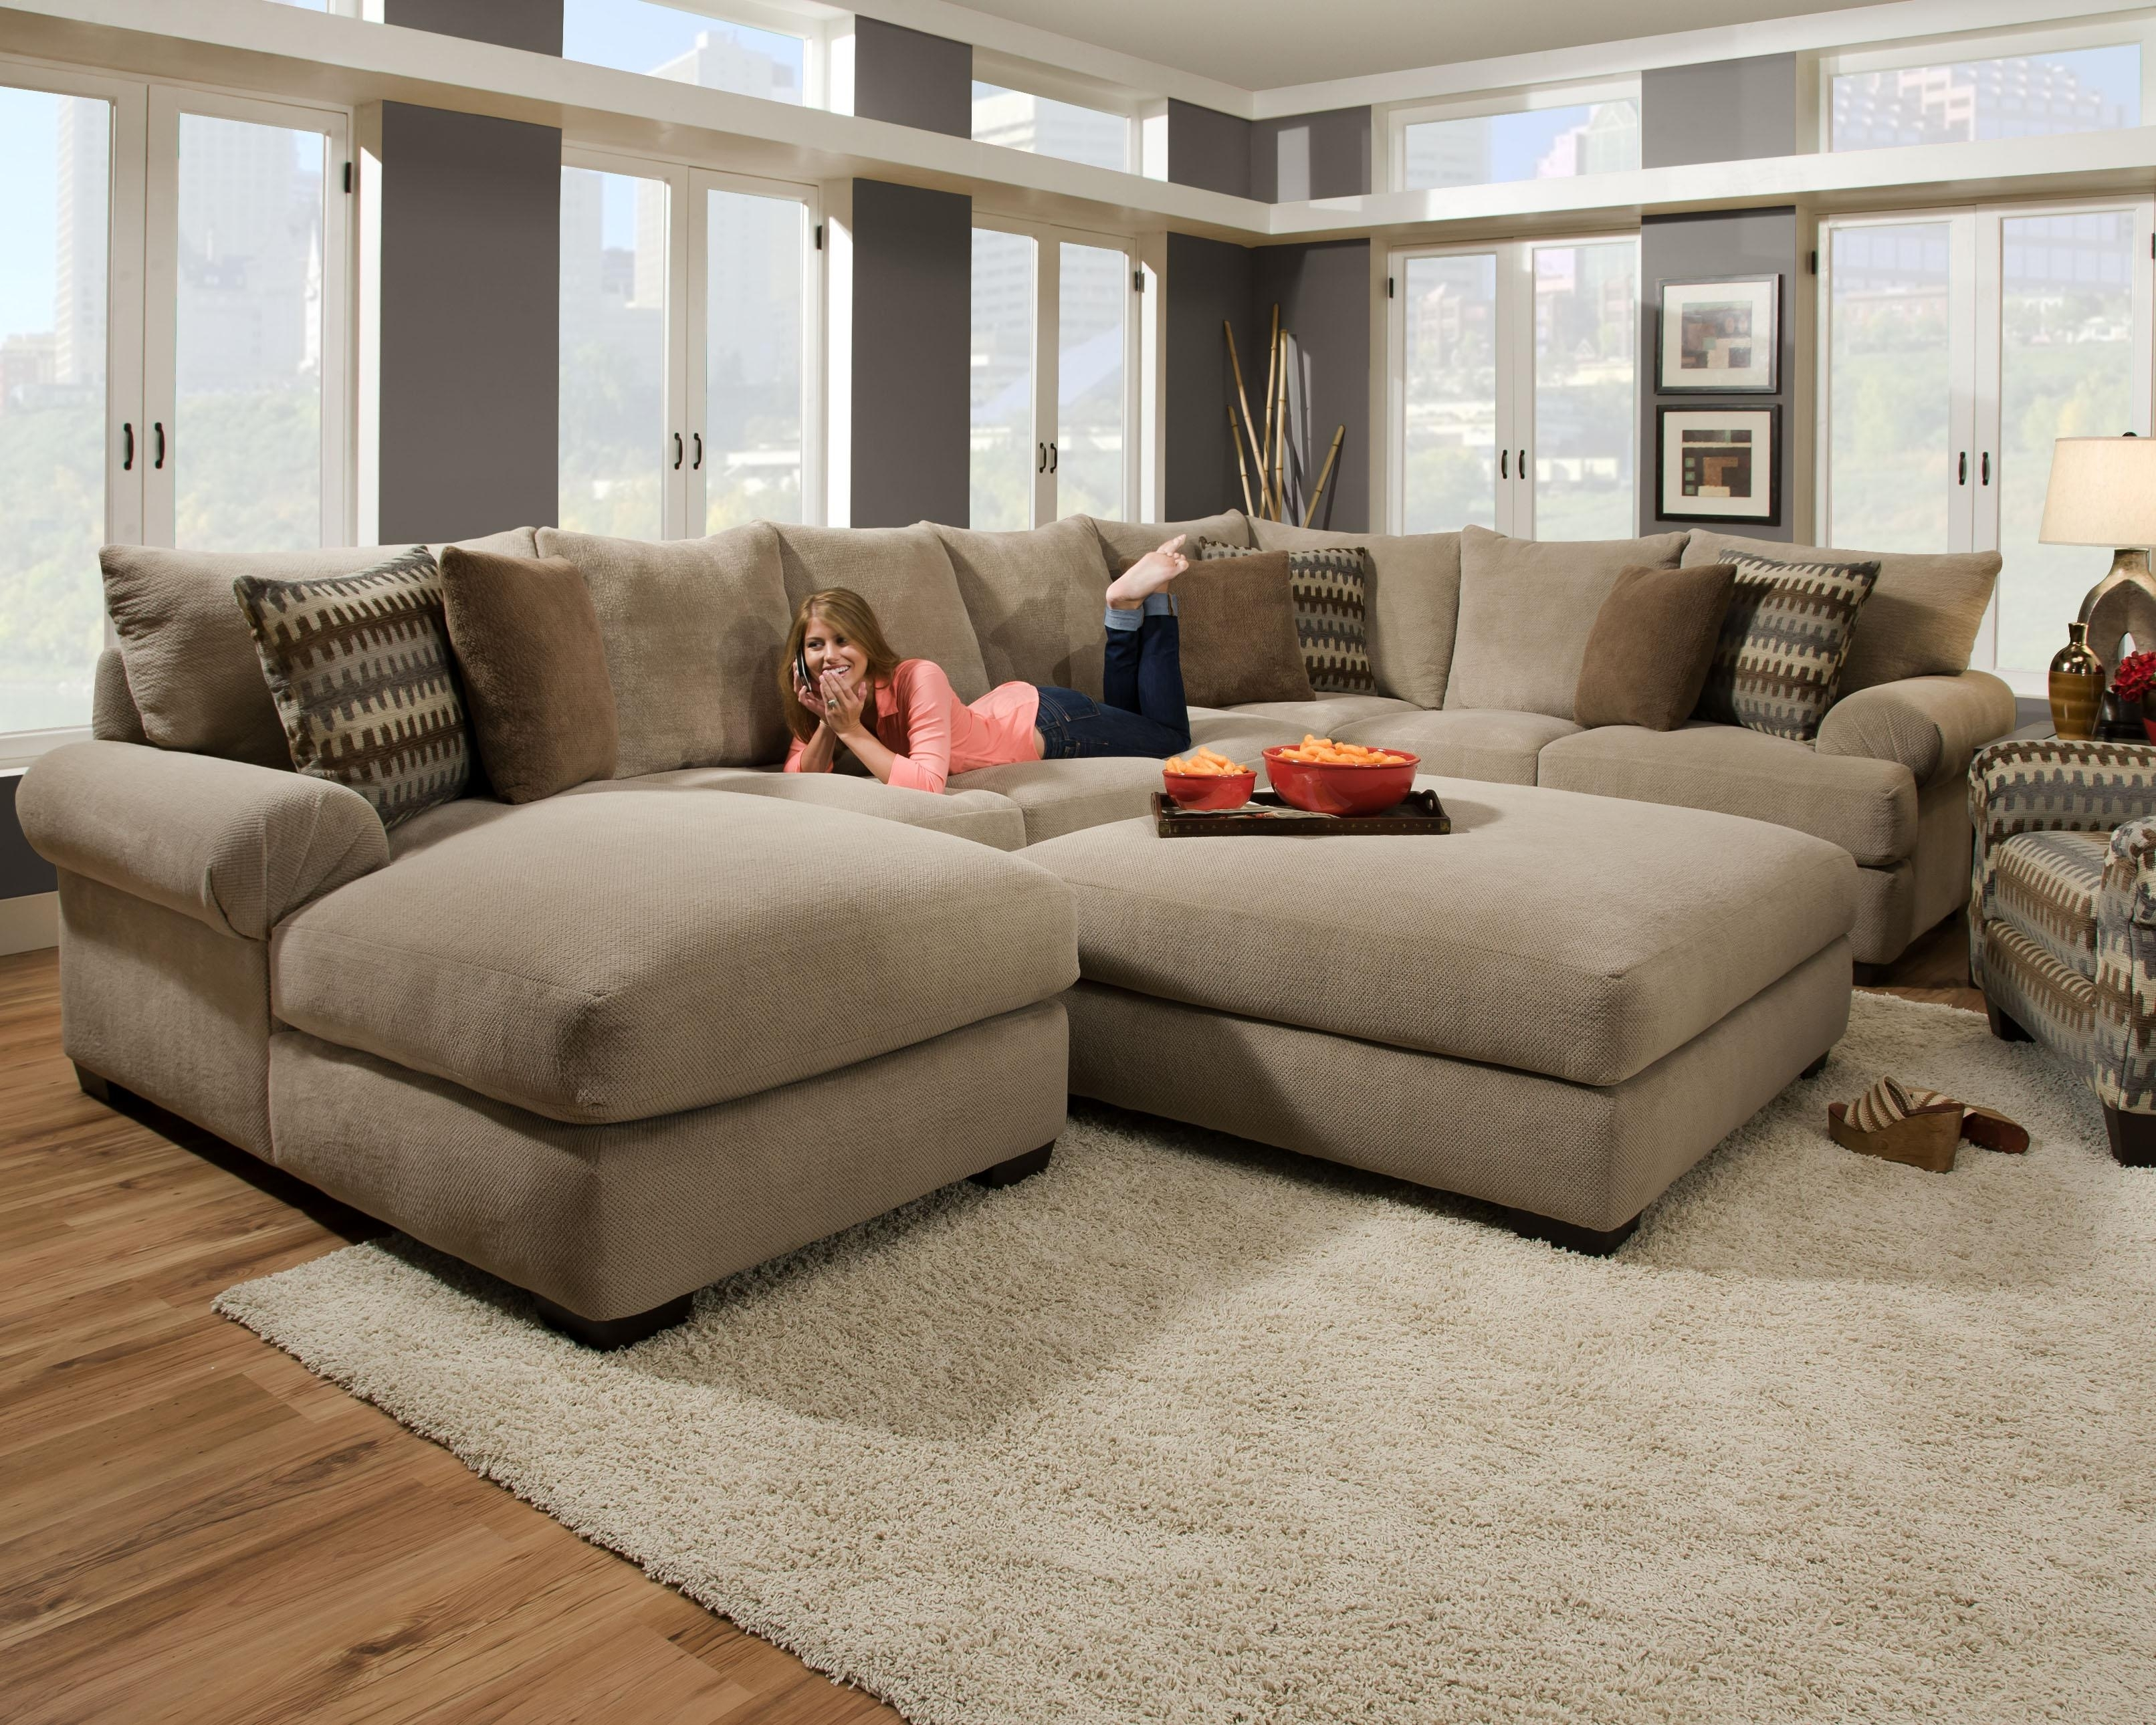 Cheap Sectional Sofas Under 400 | Aifaresidency Within Sectional Sofas Under (View 10 of 10)